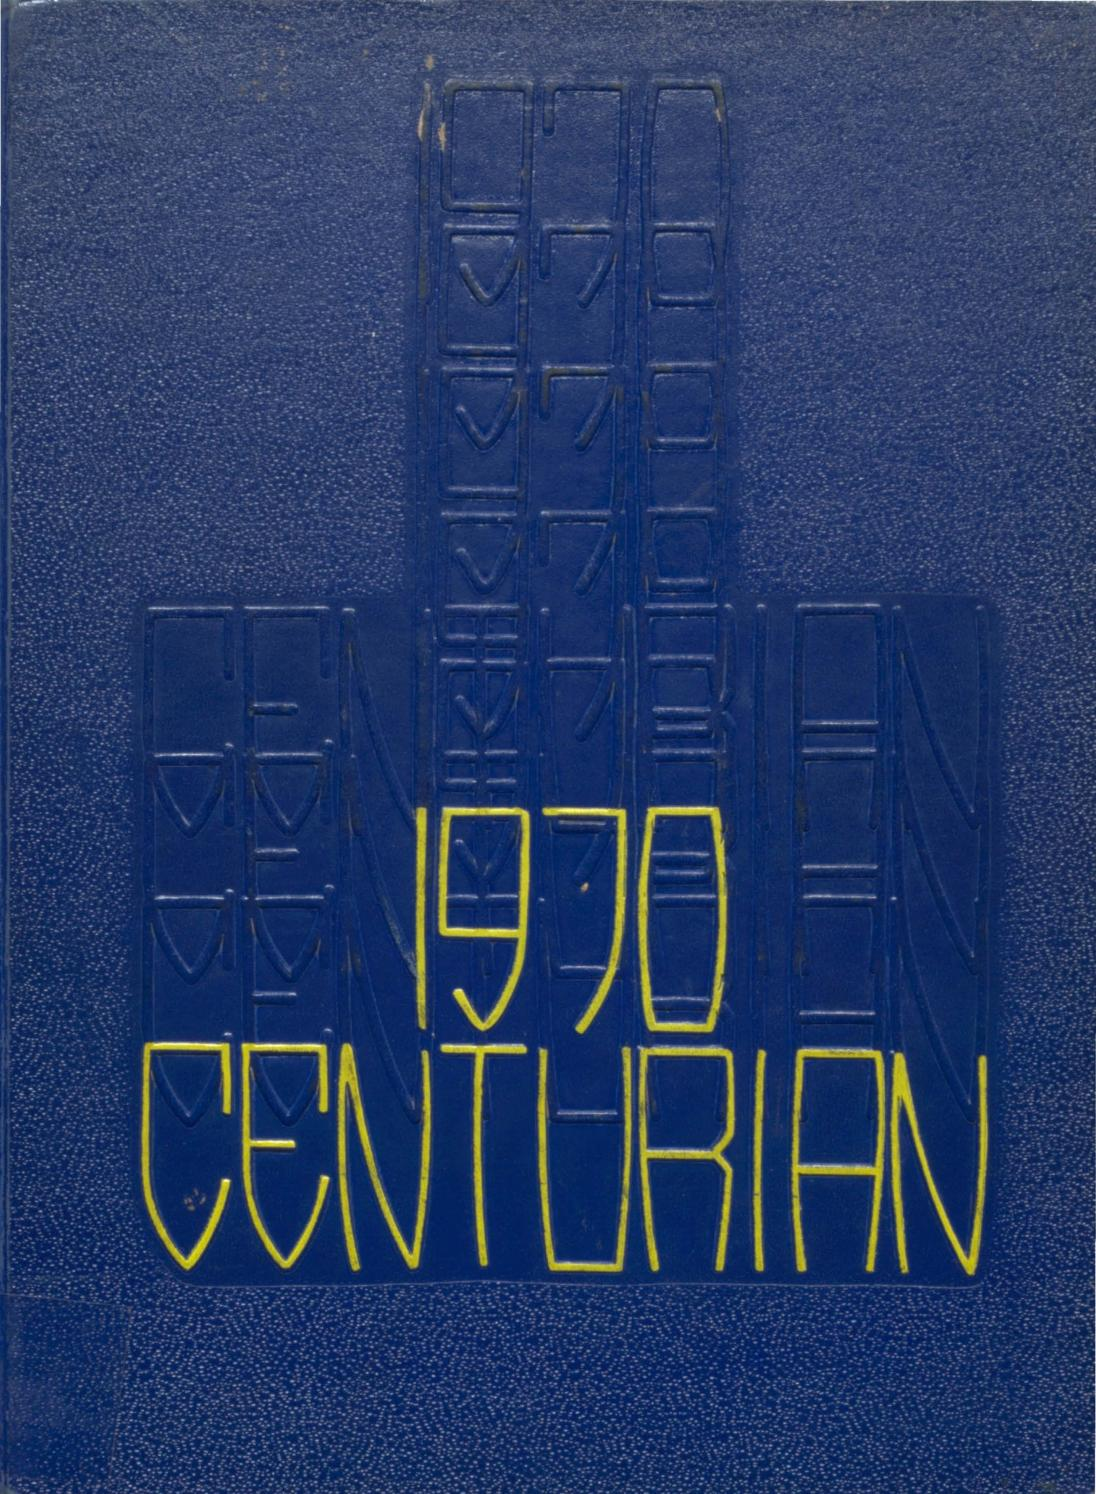 The Centurian Yearbook 1970 by Centurian